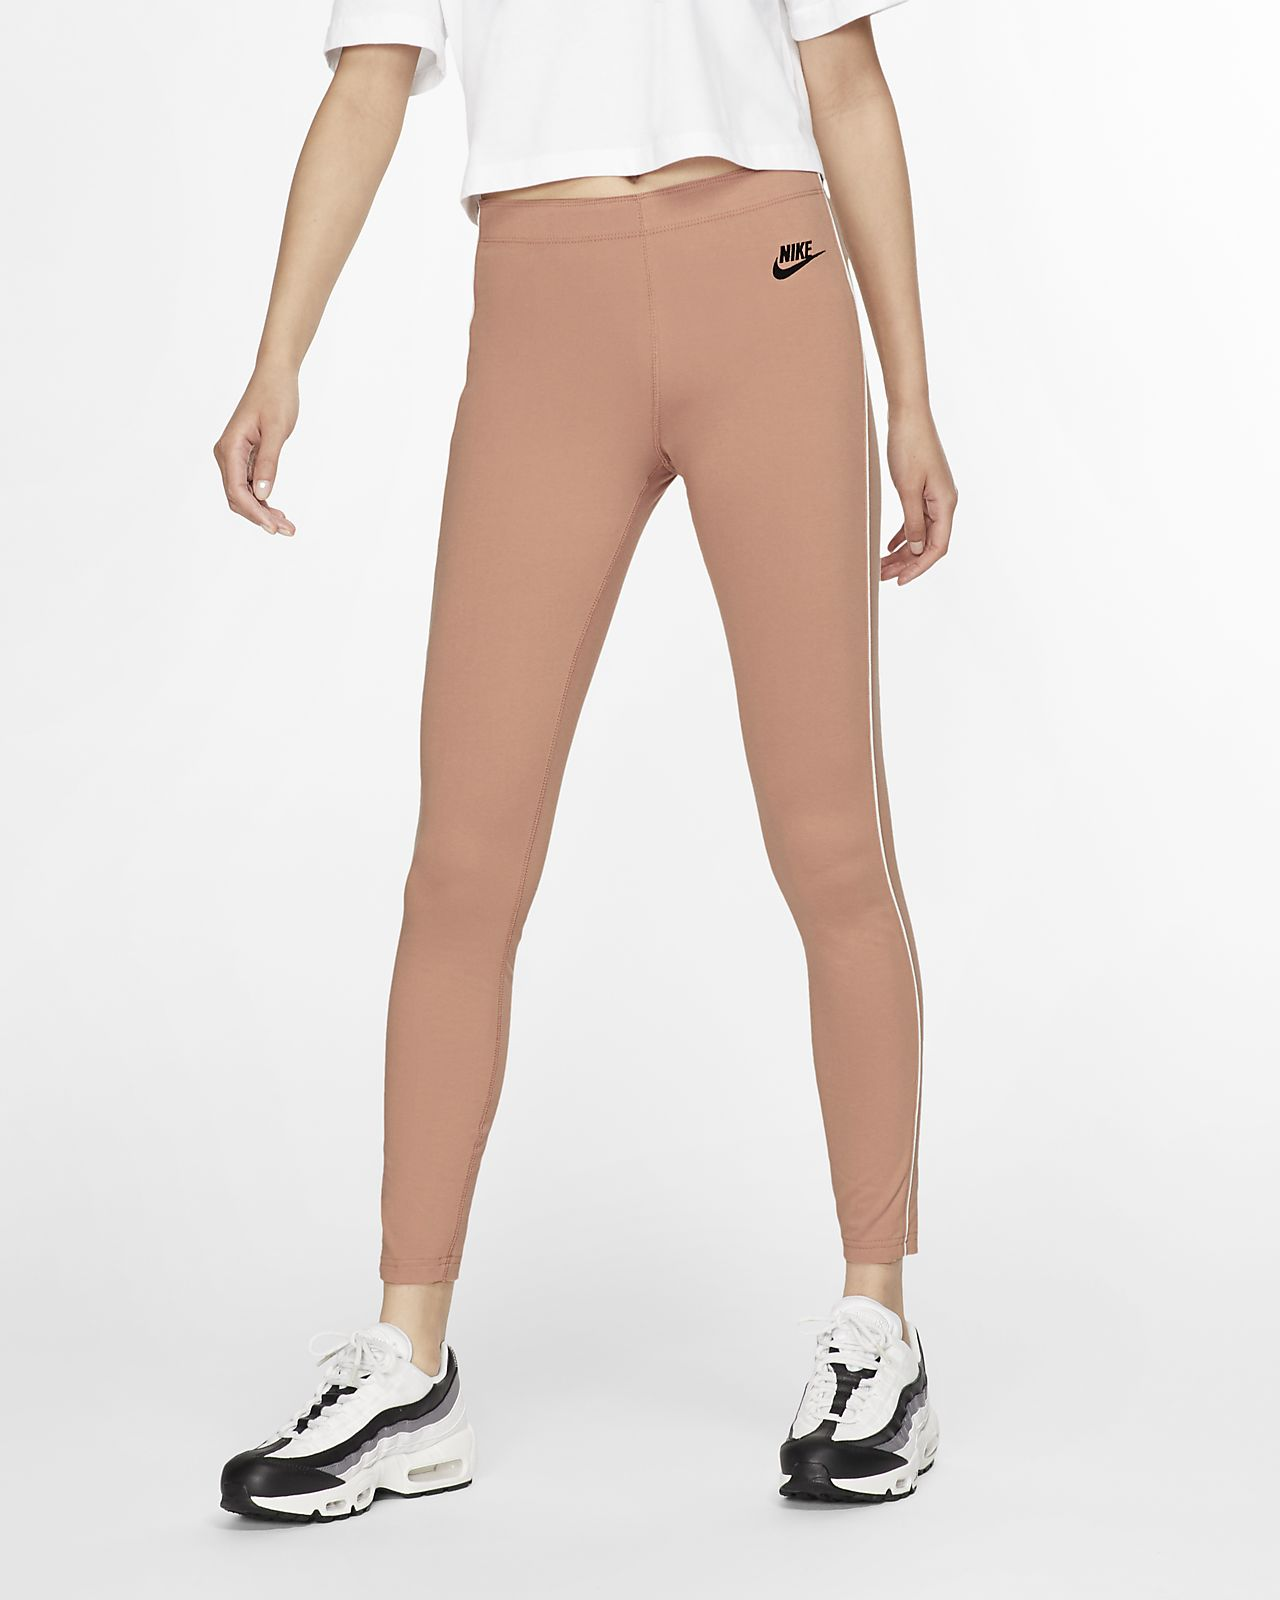 Nike Sportswear Damen-Leggings